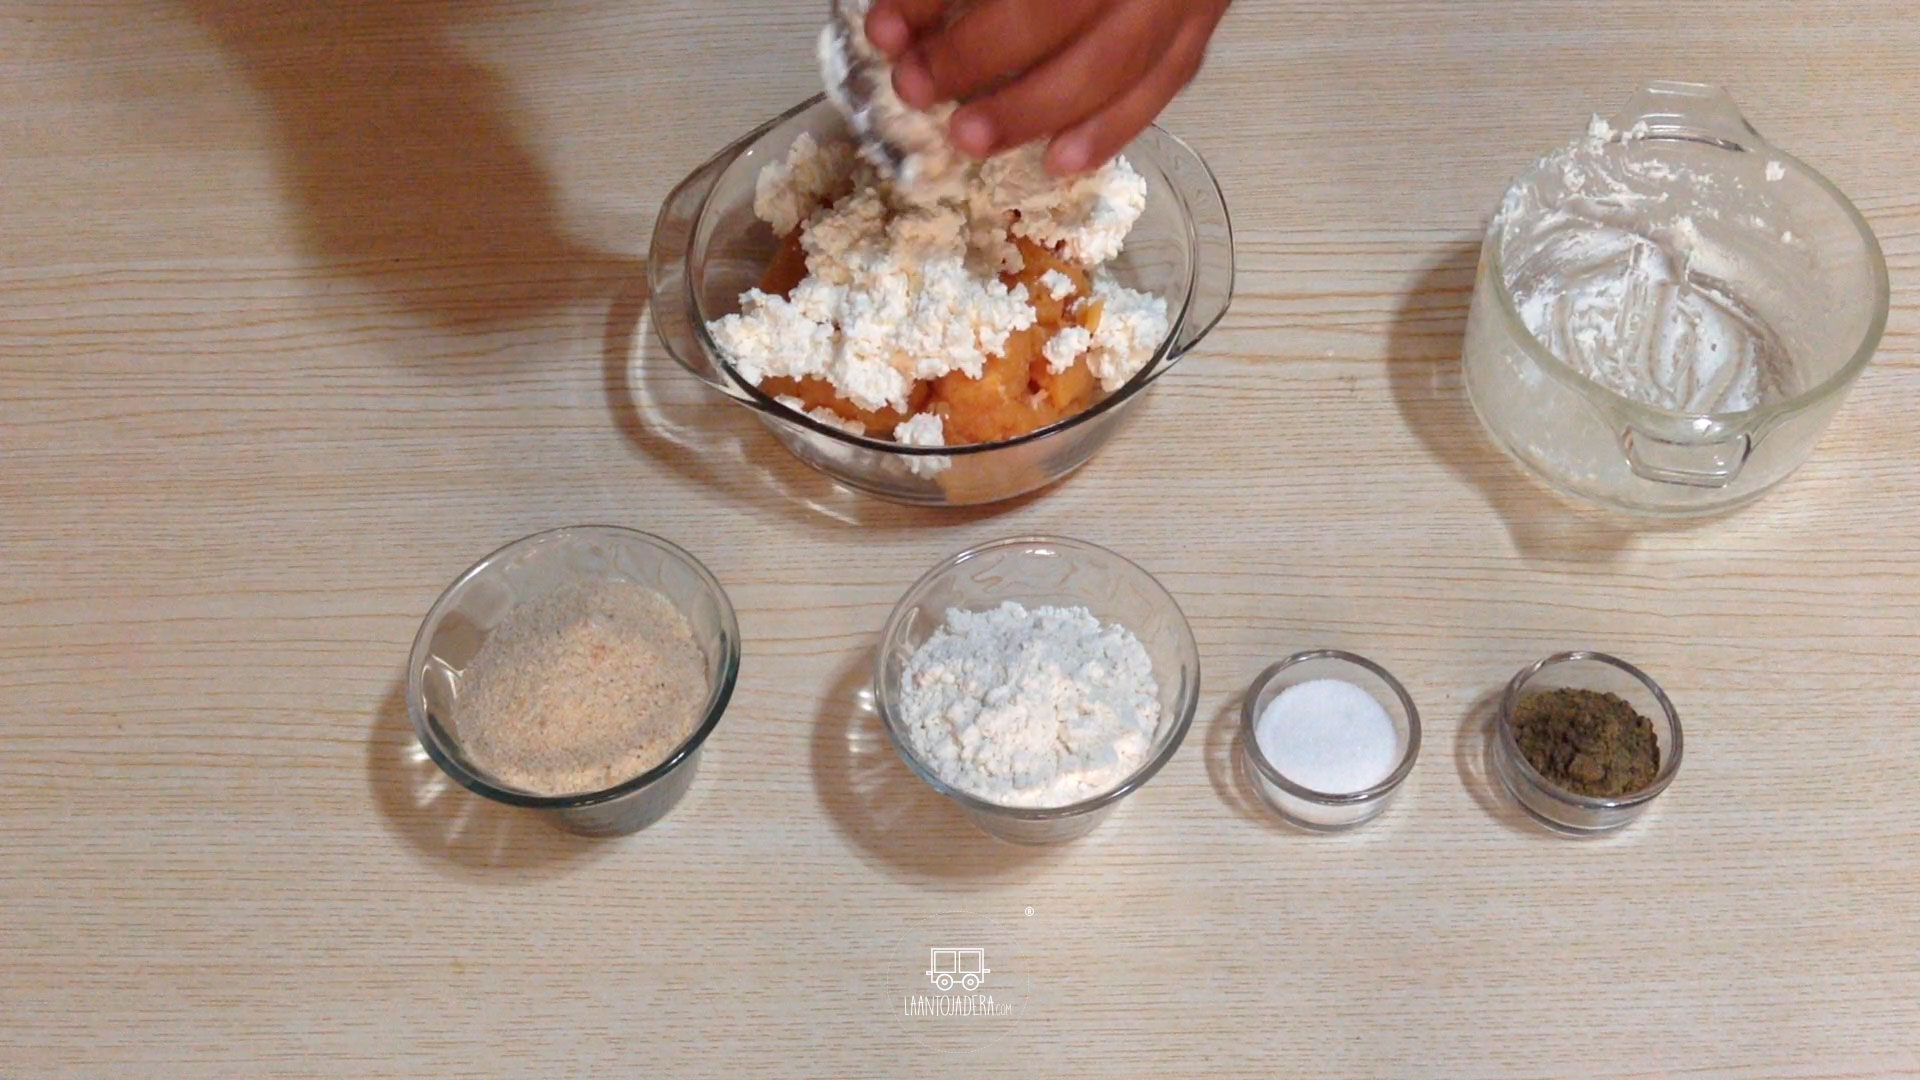 La Antojadera | Nuggets de Pollo con Queso Doble Crema